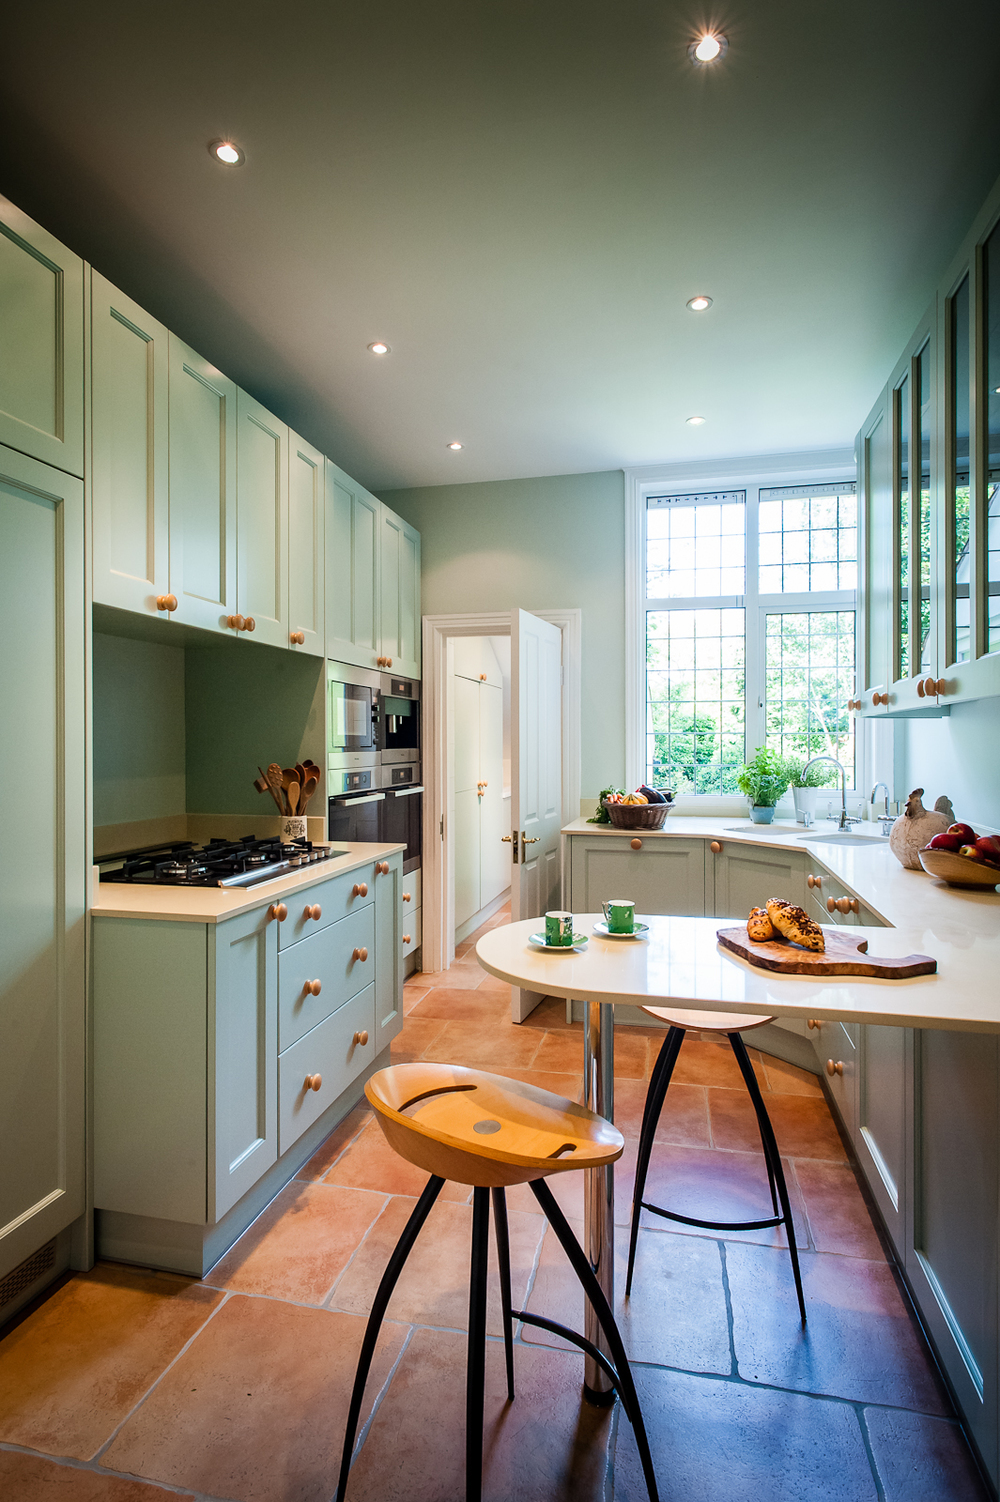 Golders Green Kitchen Renovation by Smartstyle Interiors 3.jpg